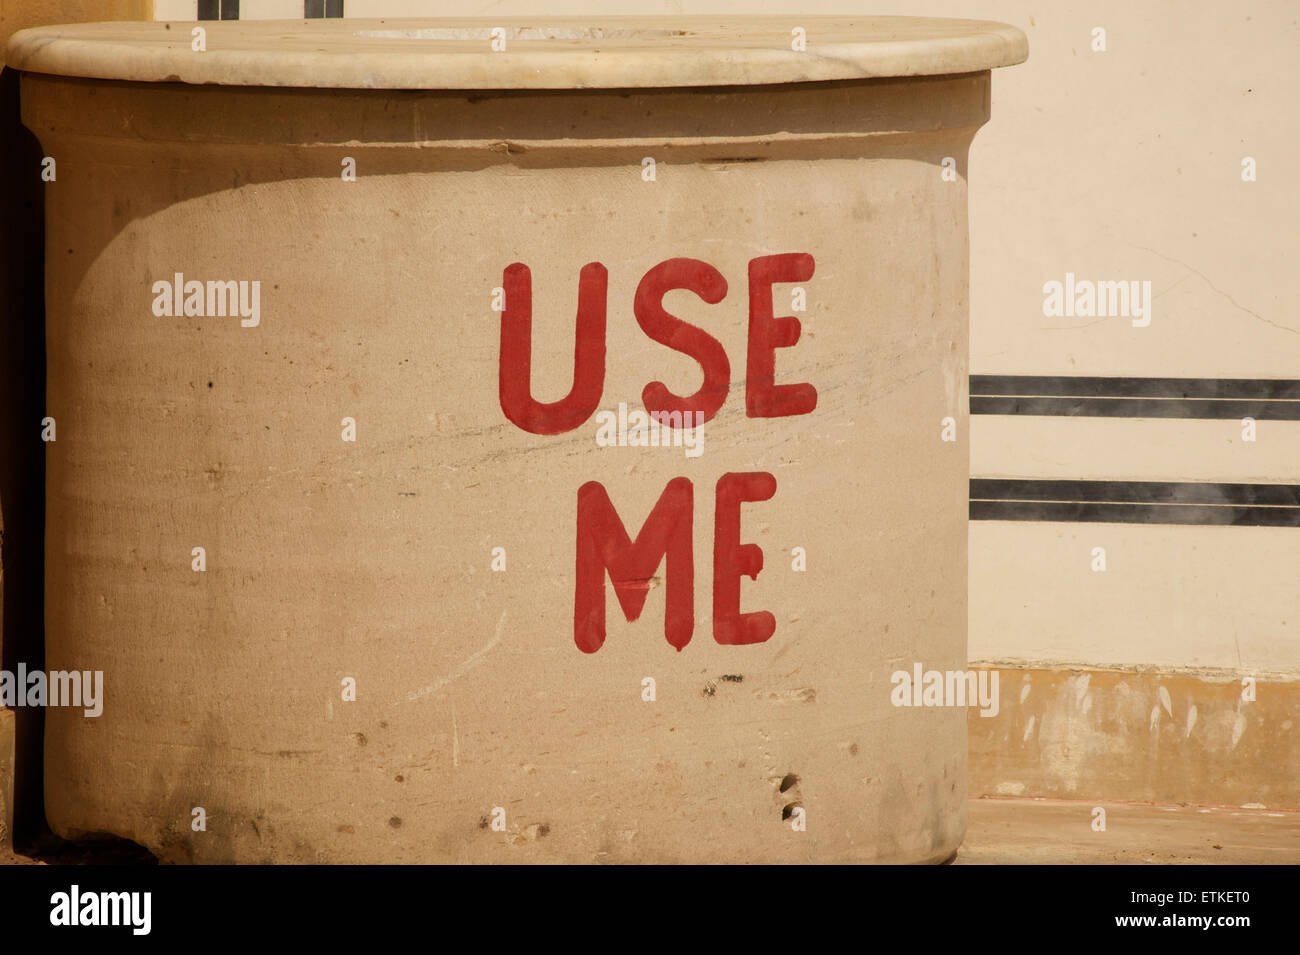 USE ME. Rubbish bin, India - Stock Image